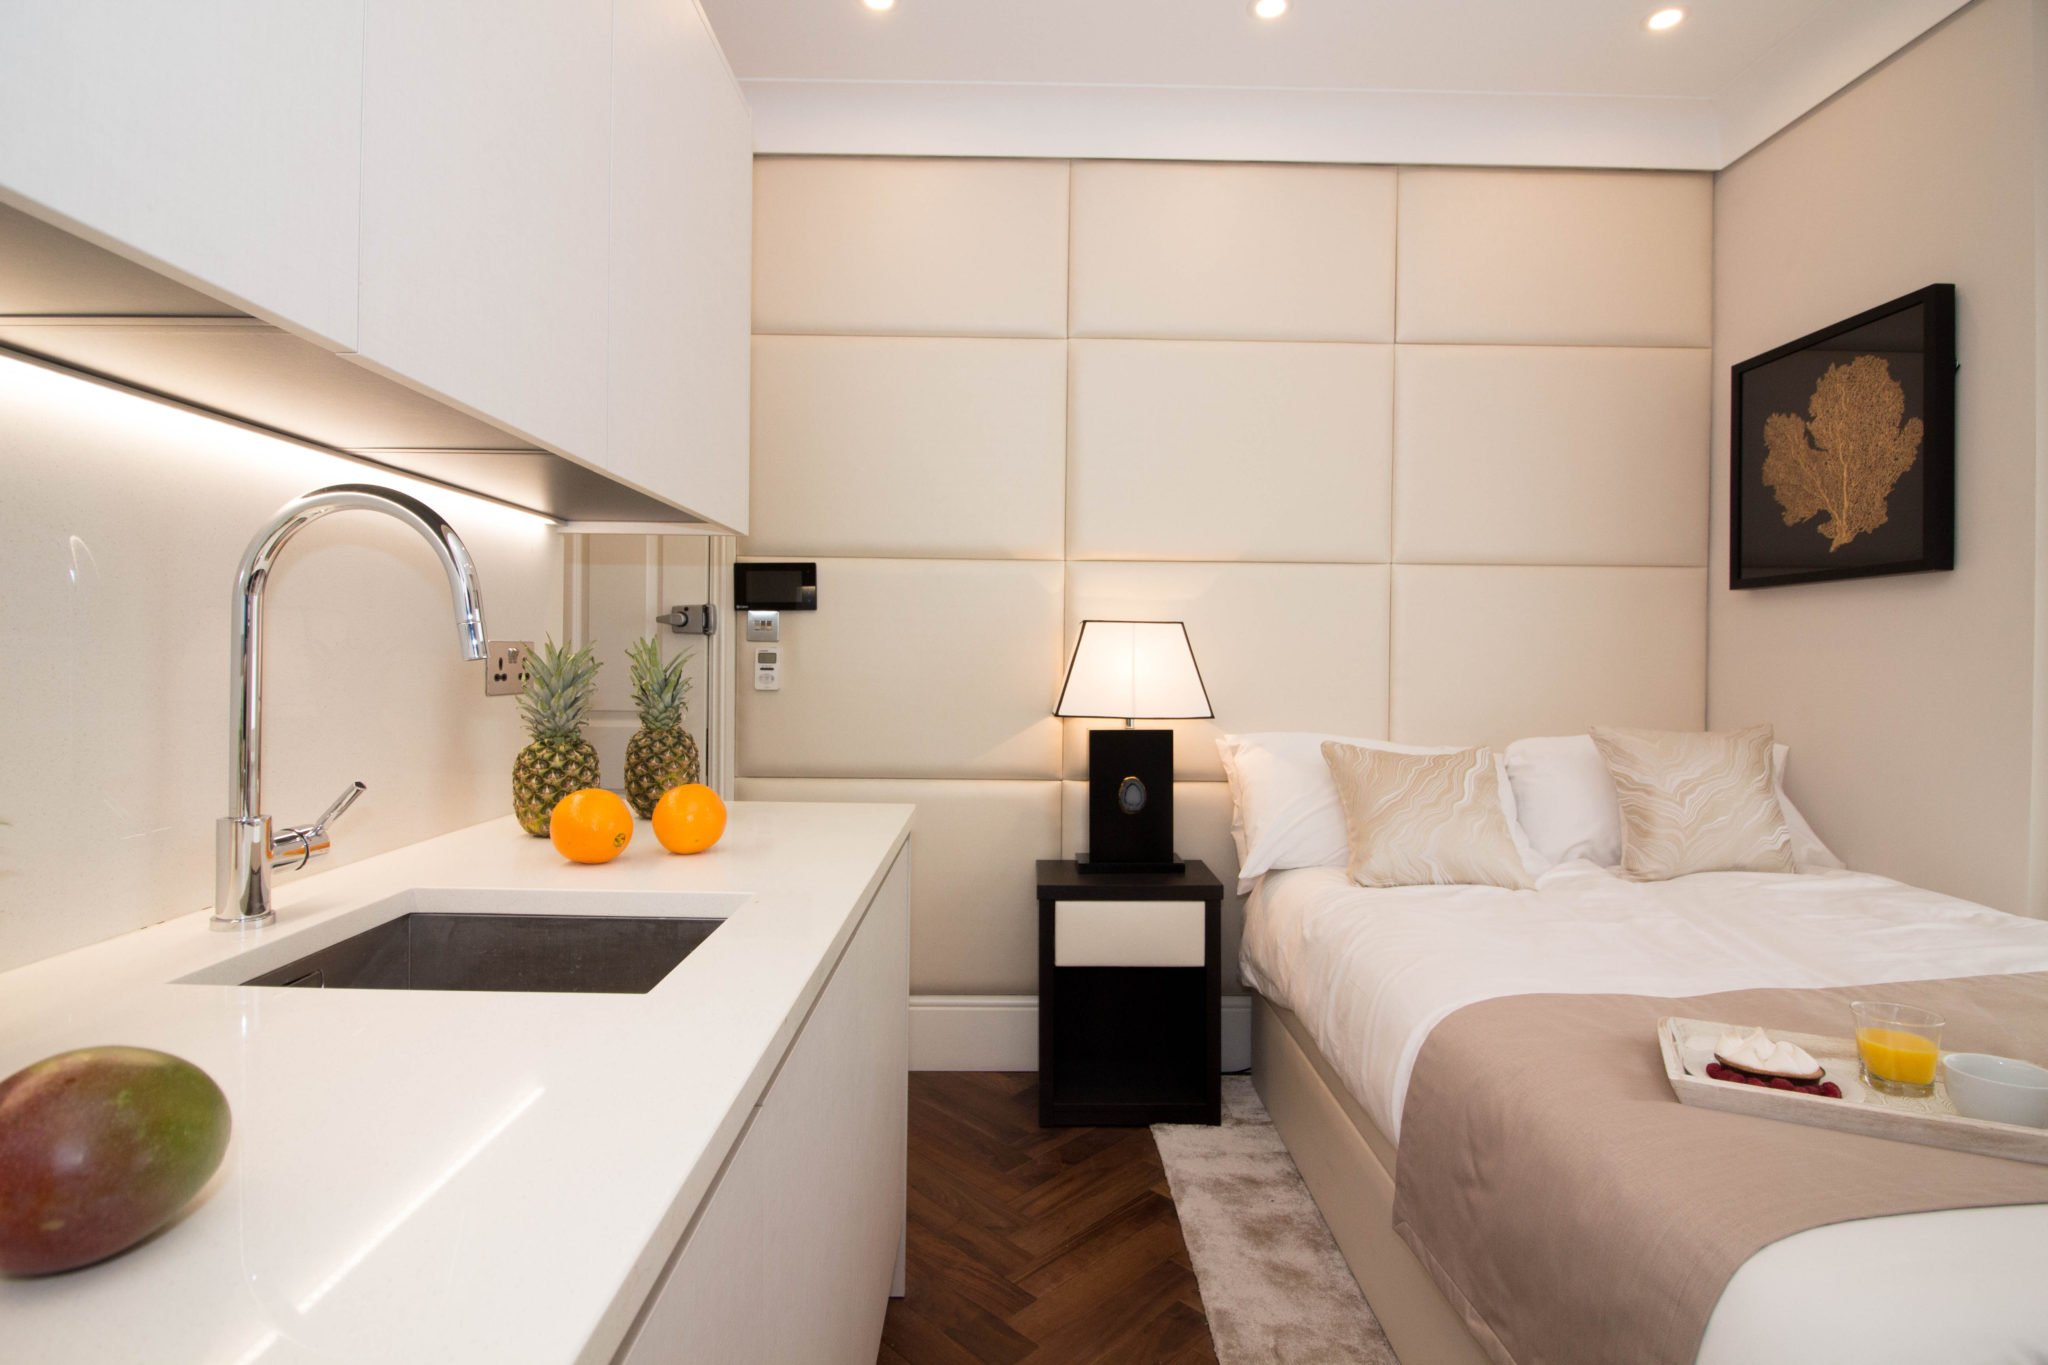 Baker-Street-Serviced-Apartments---Luxury-Self-Catering-Accommodation-Central-London-|-Urban-Stay